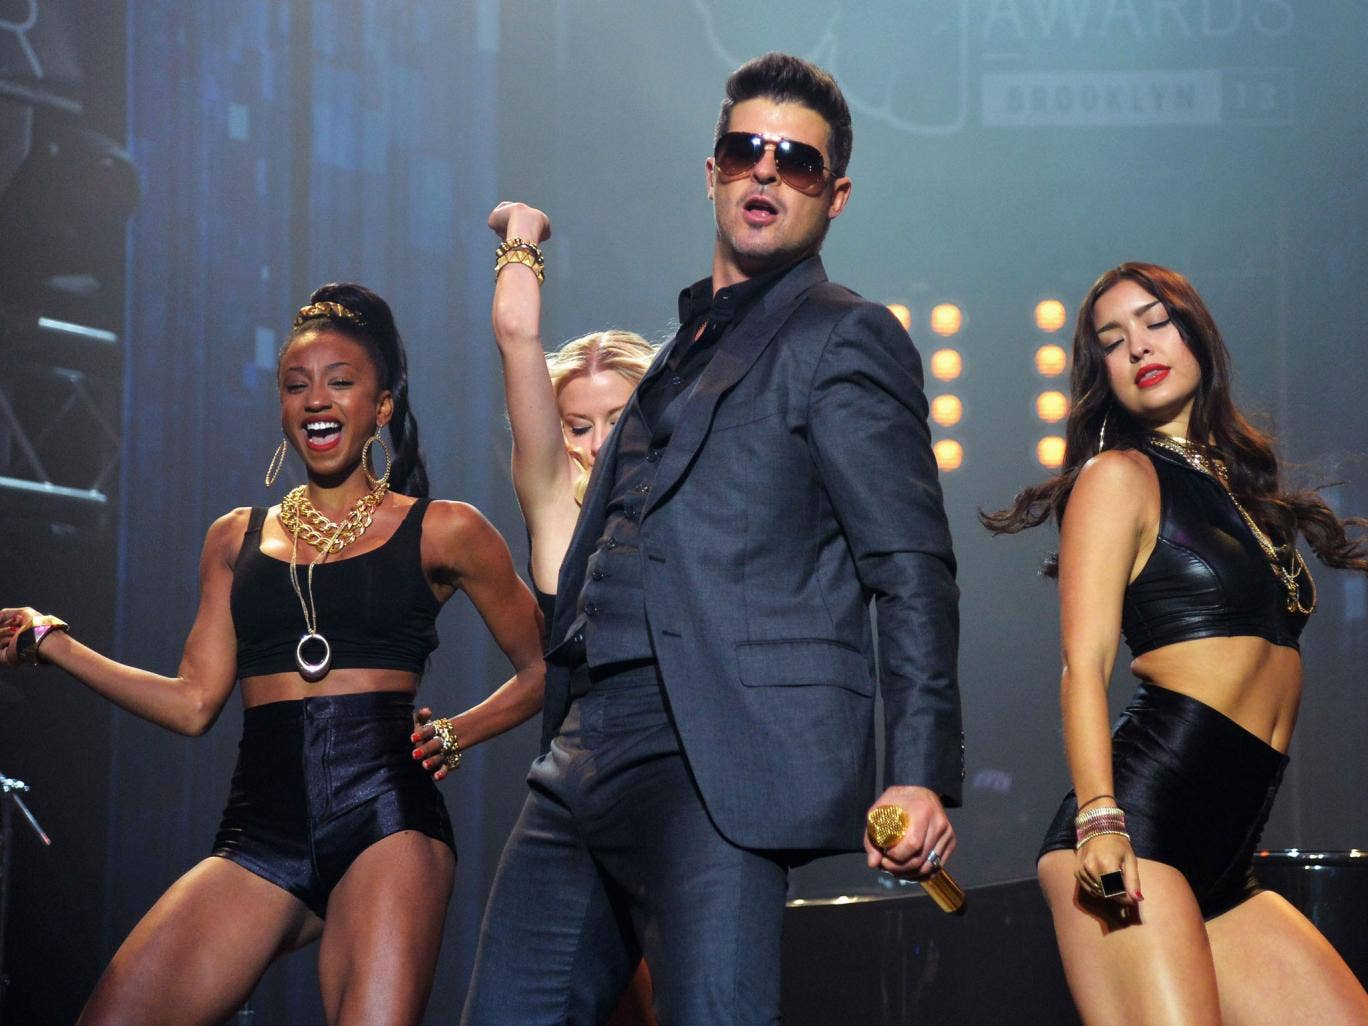 Robin Thicke performing Blurred Lines in New York